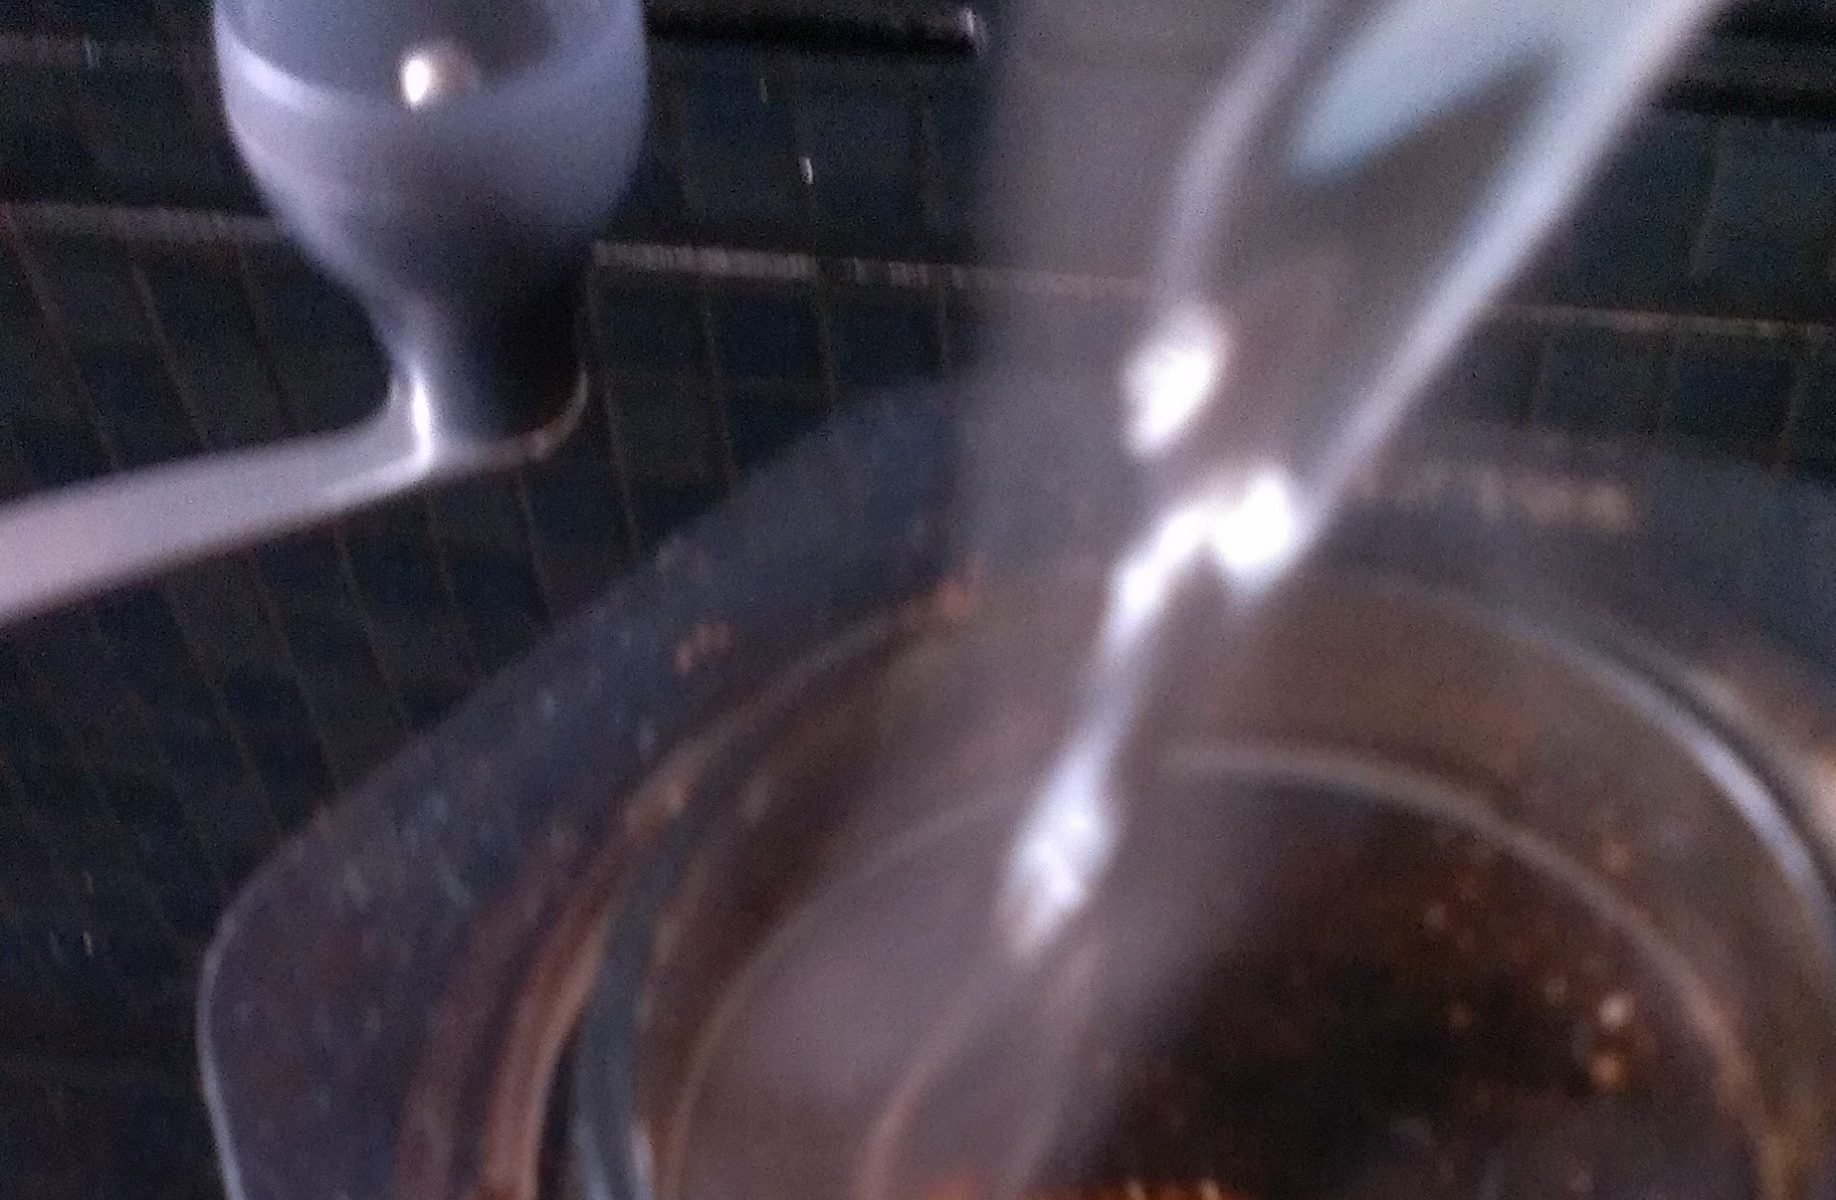 Water pour onto coffee